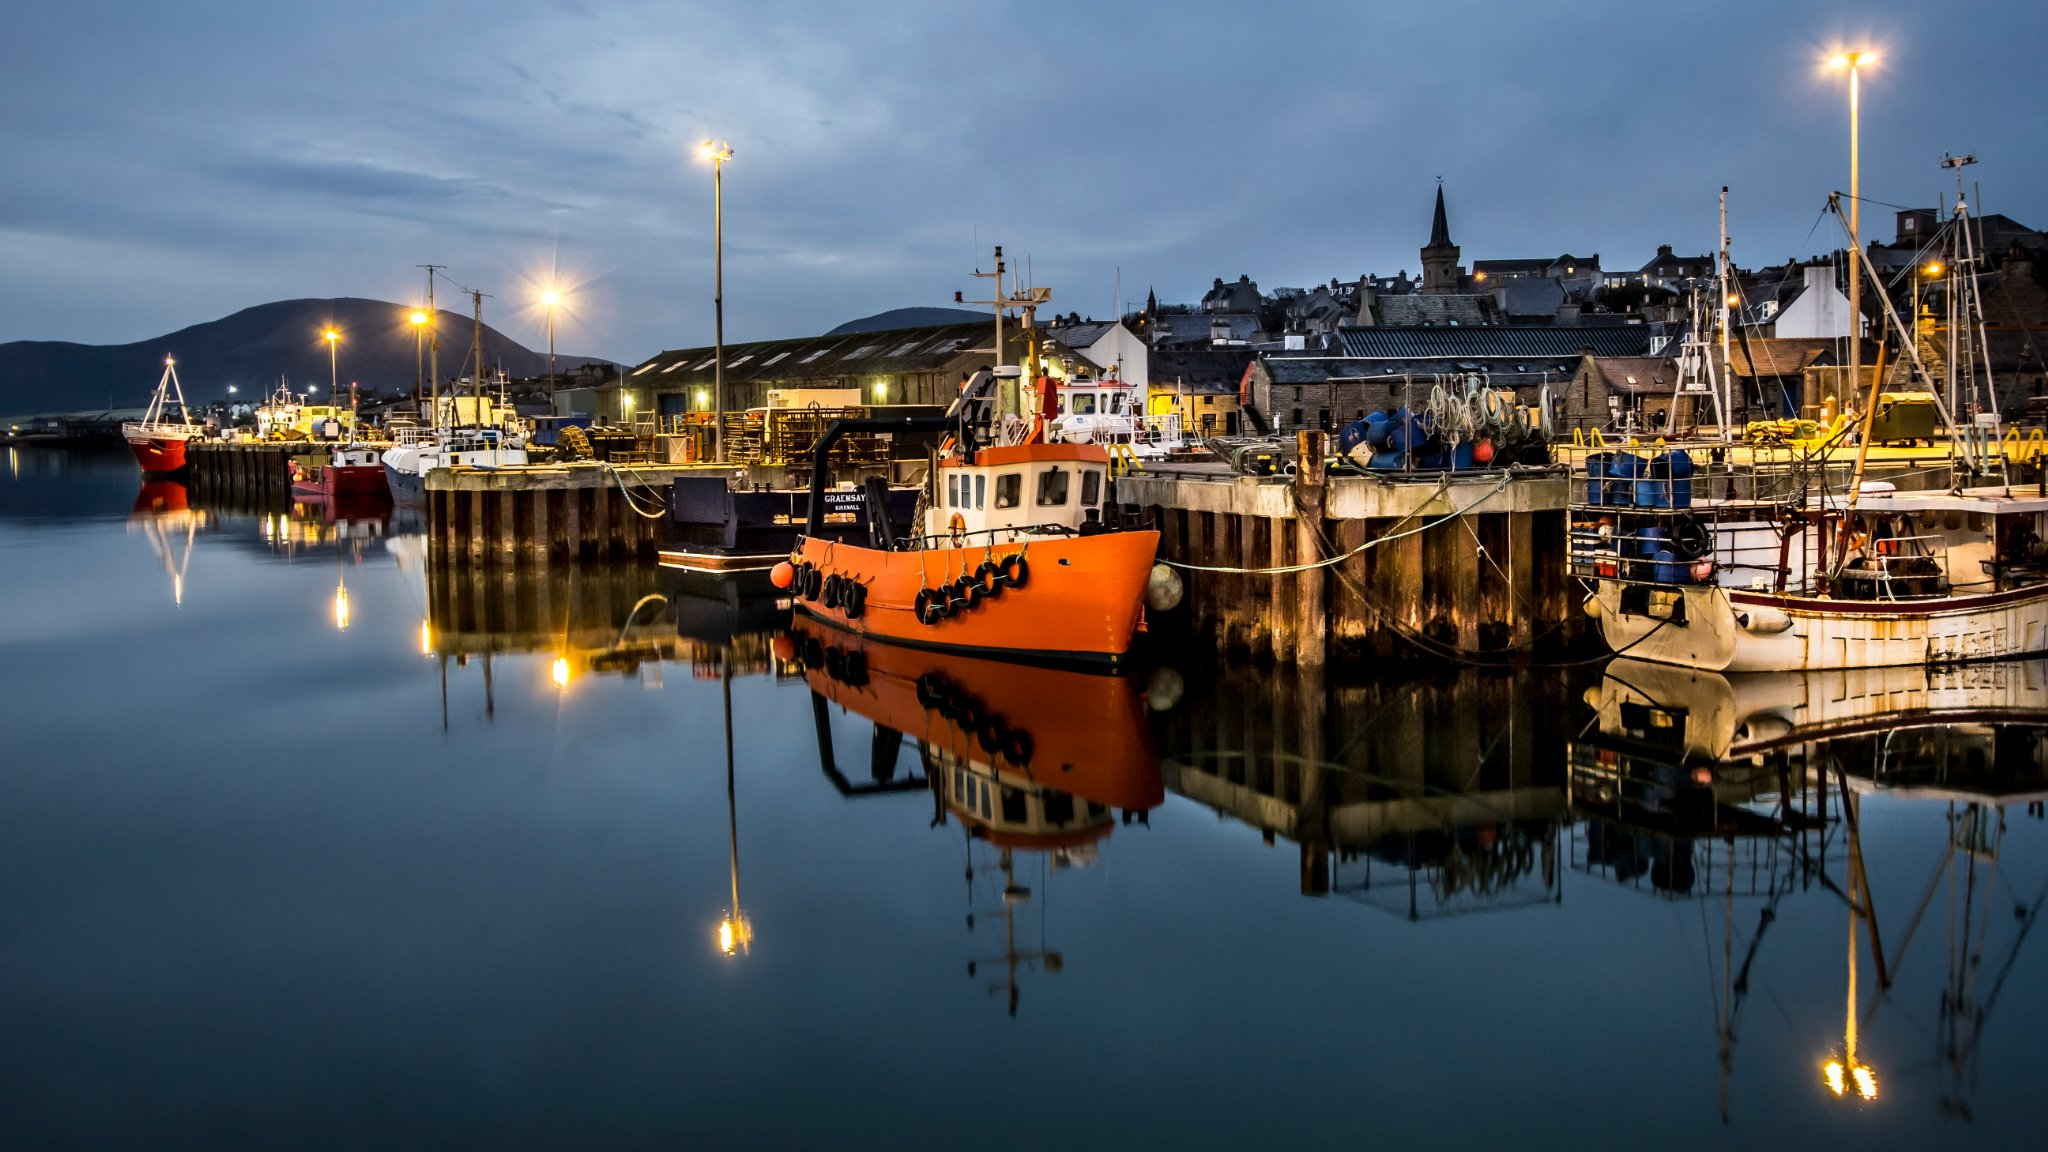 Stromness harbour at dusk - image by Maciek Orlicki